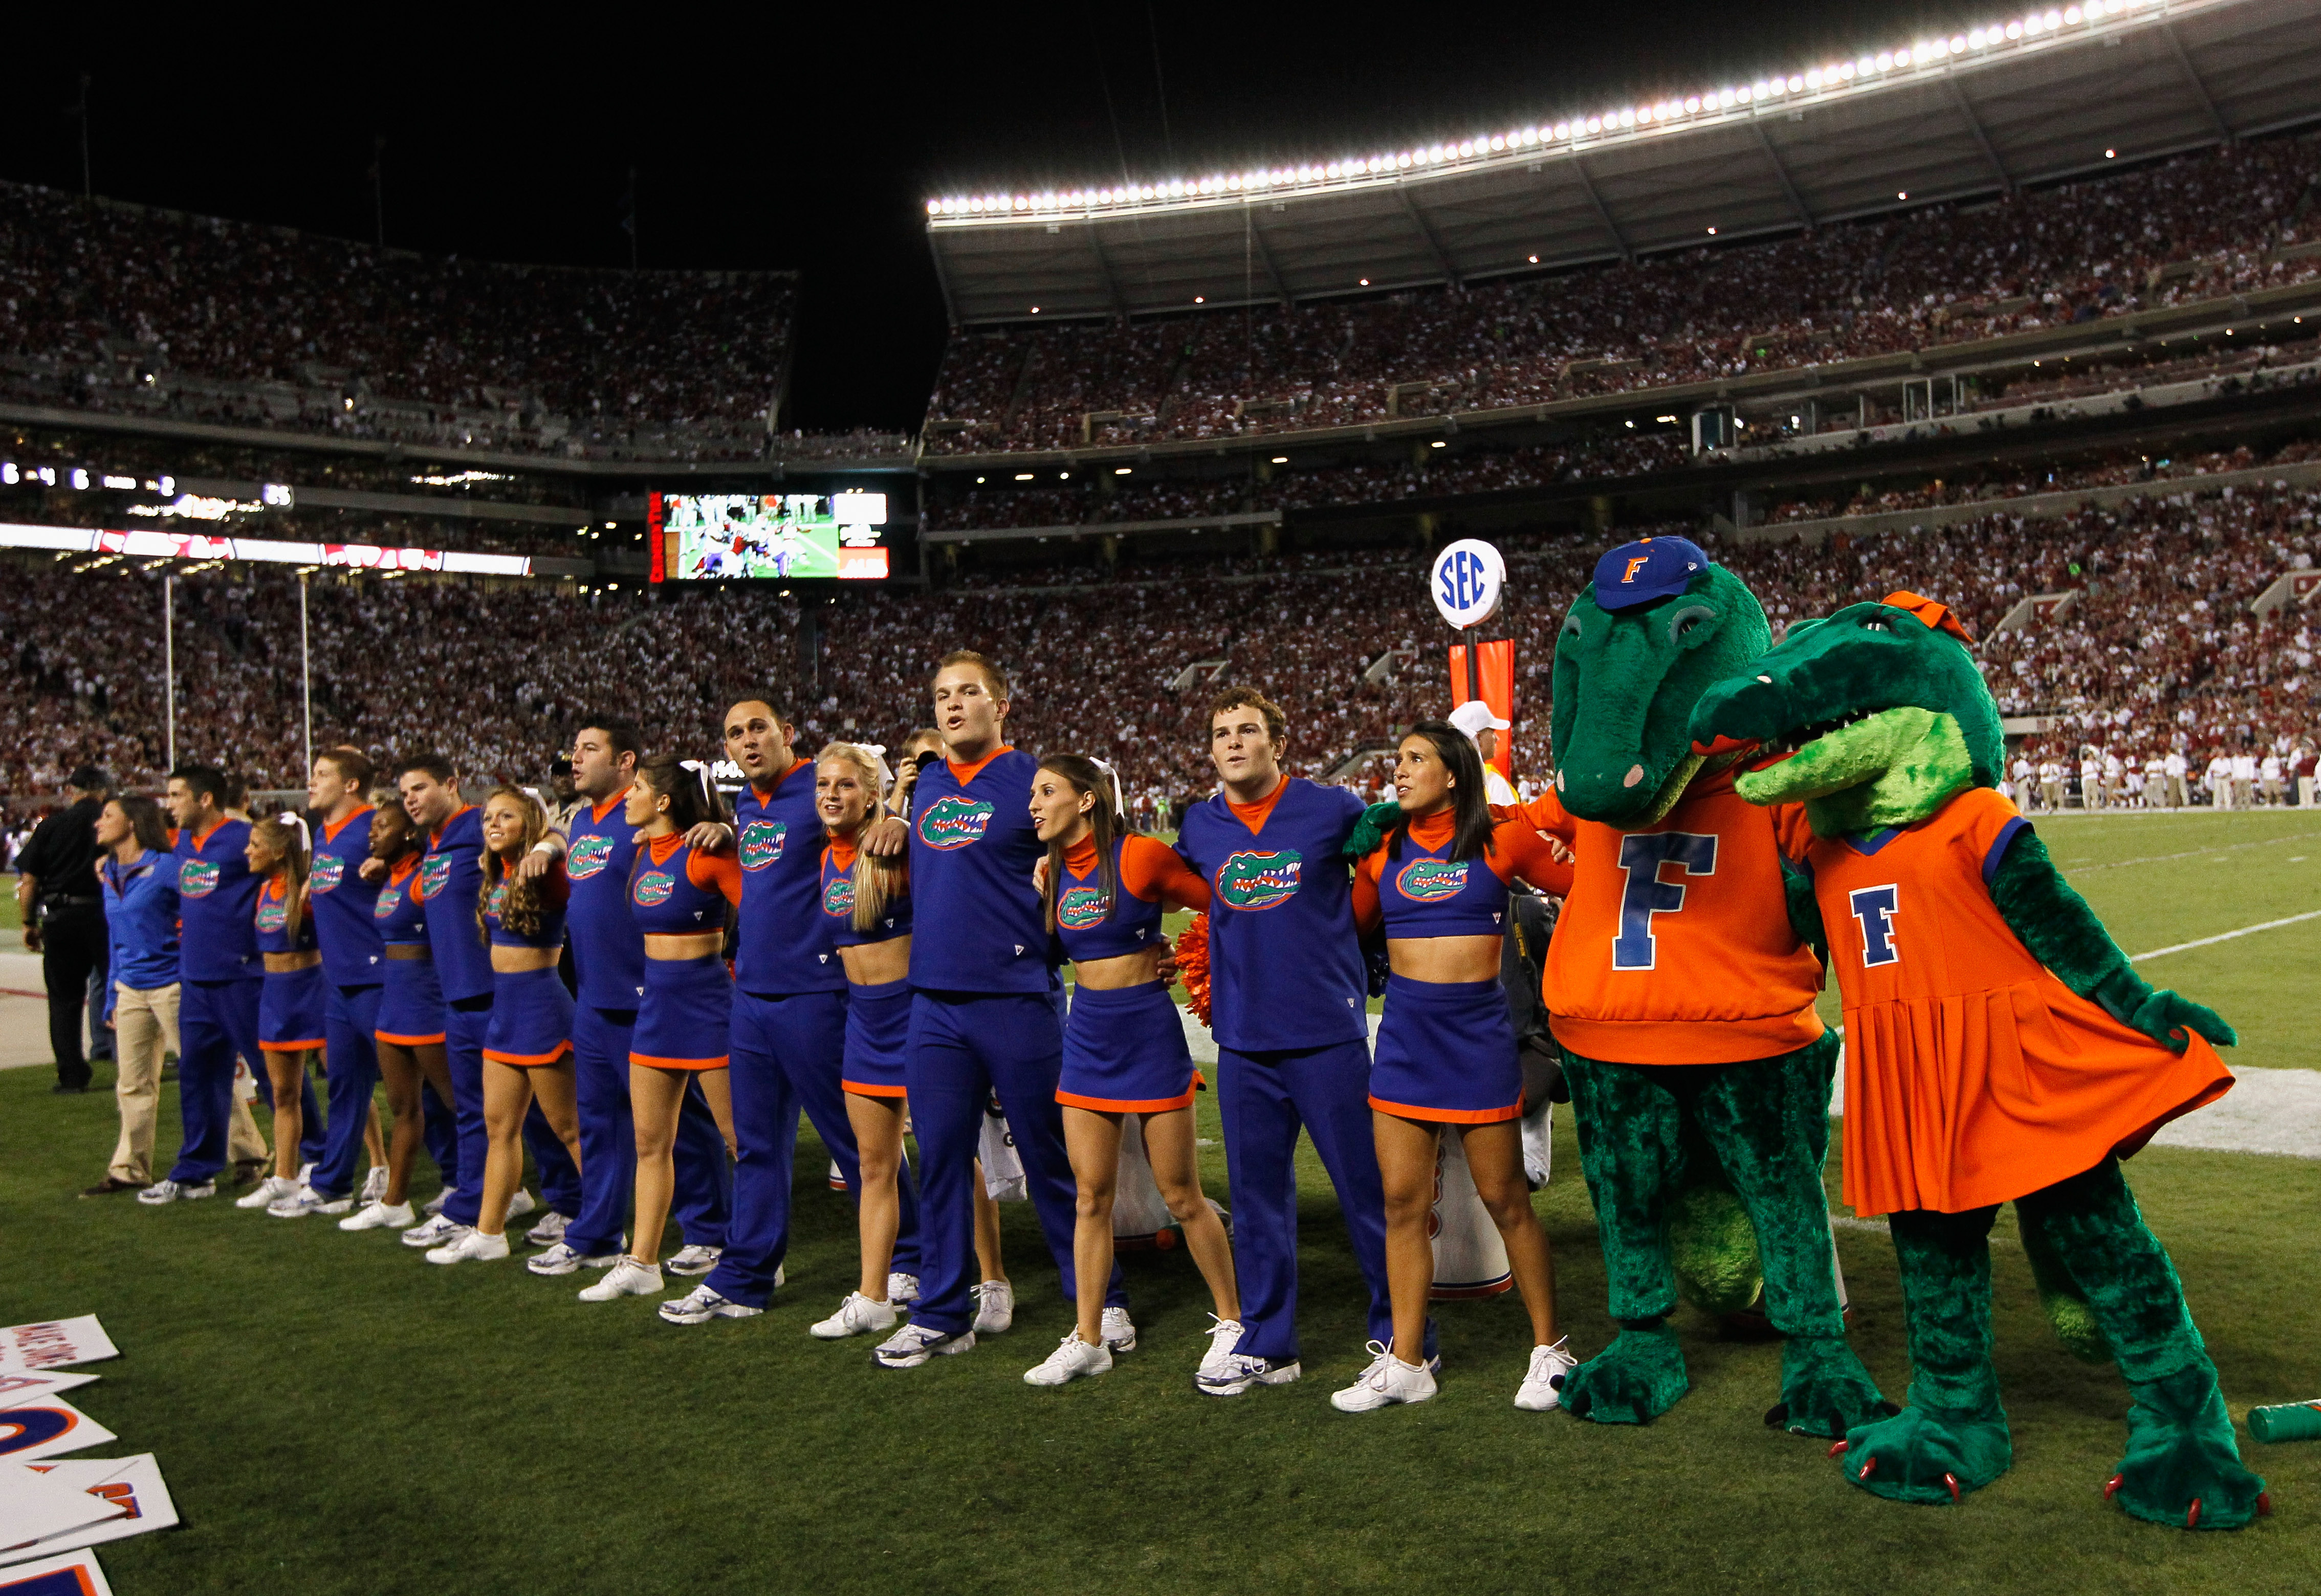 TUSCALOOSA, AL - OCTOBER 02:  Cheerleaders and mascots of the Florida Gators during the game against the Alabama Crimson Tide at Bryant-Denny Stadium on October 2, 2010 in Tuscaloosa, Alabama.  (Photo by Kevin C. Cox/Getty Images)